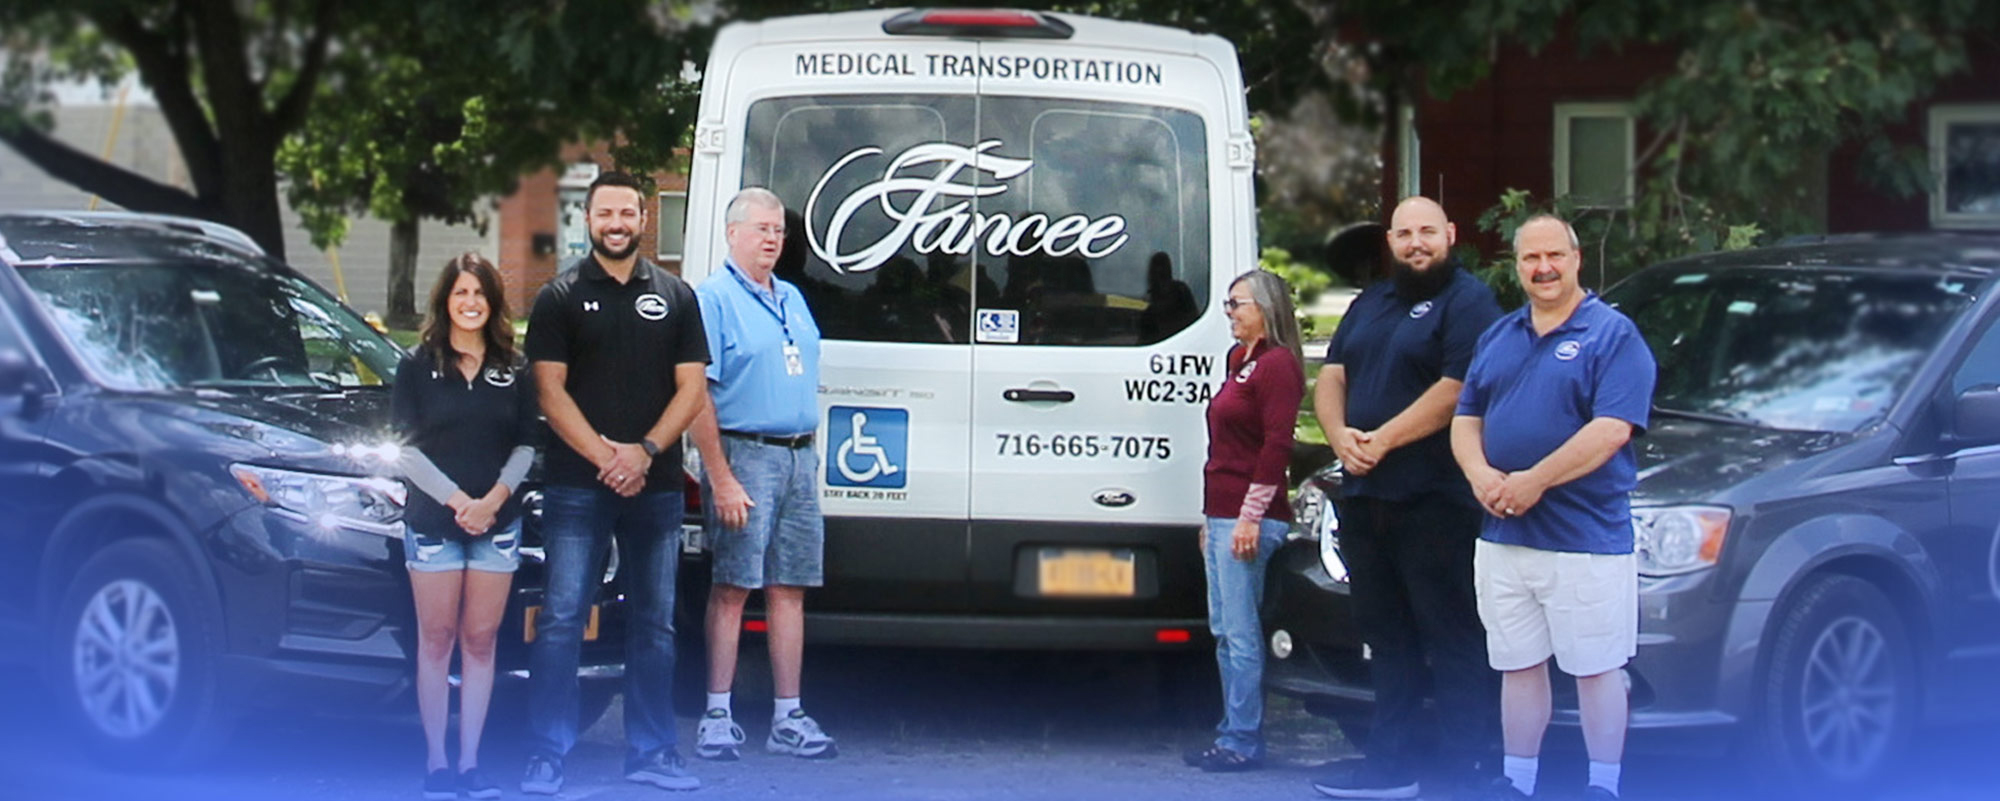 Fancee Transportation Company